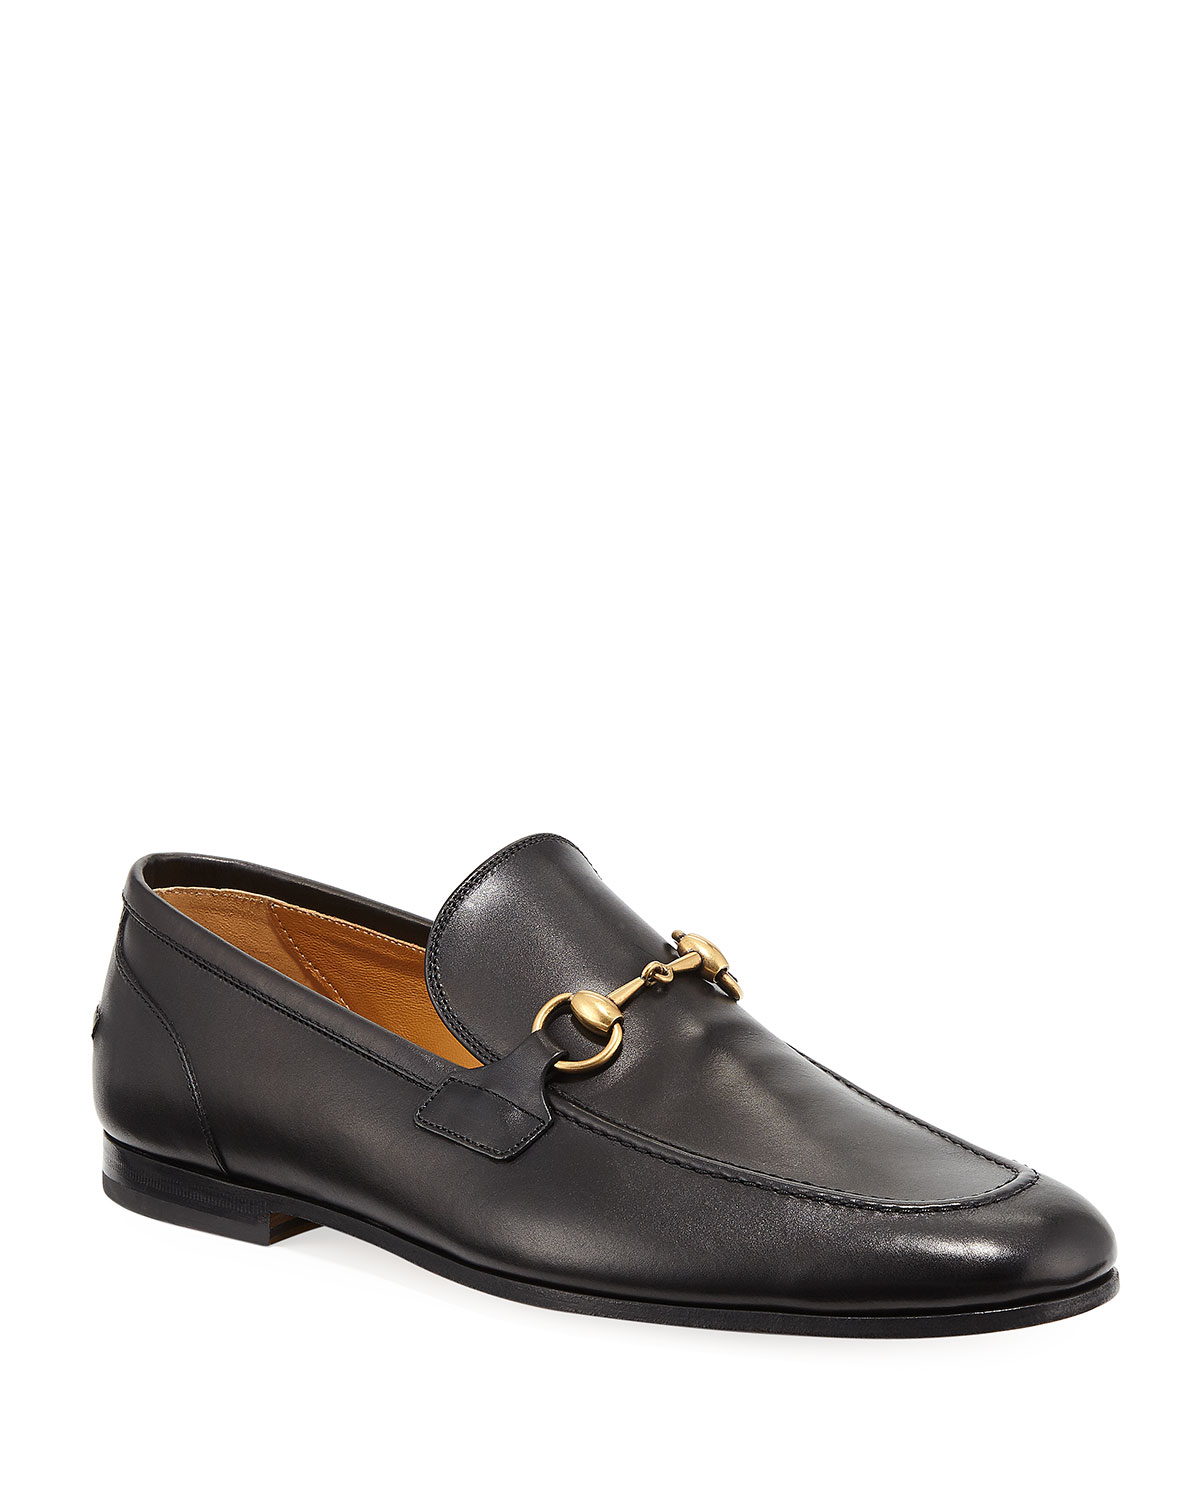 01fecffd0 Gucci Gucci Jordaan Leather Loafer   Neiman Marcus